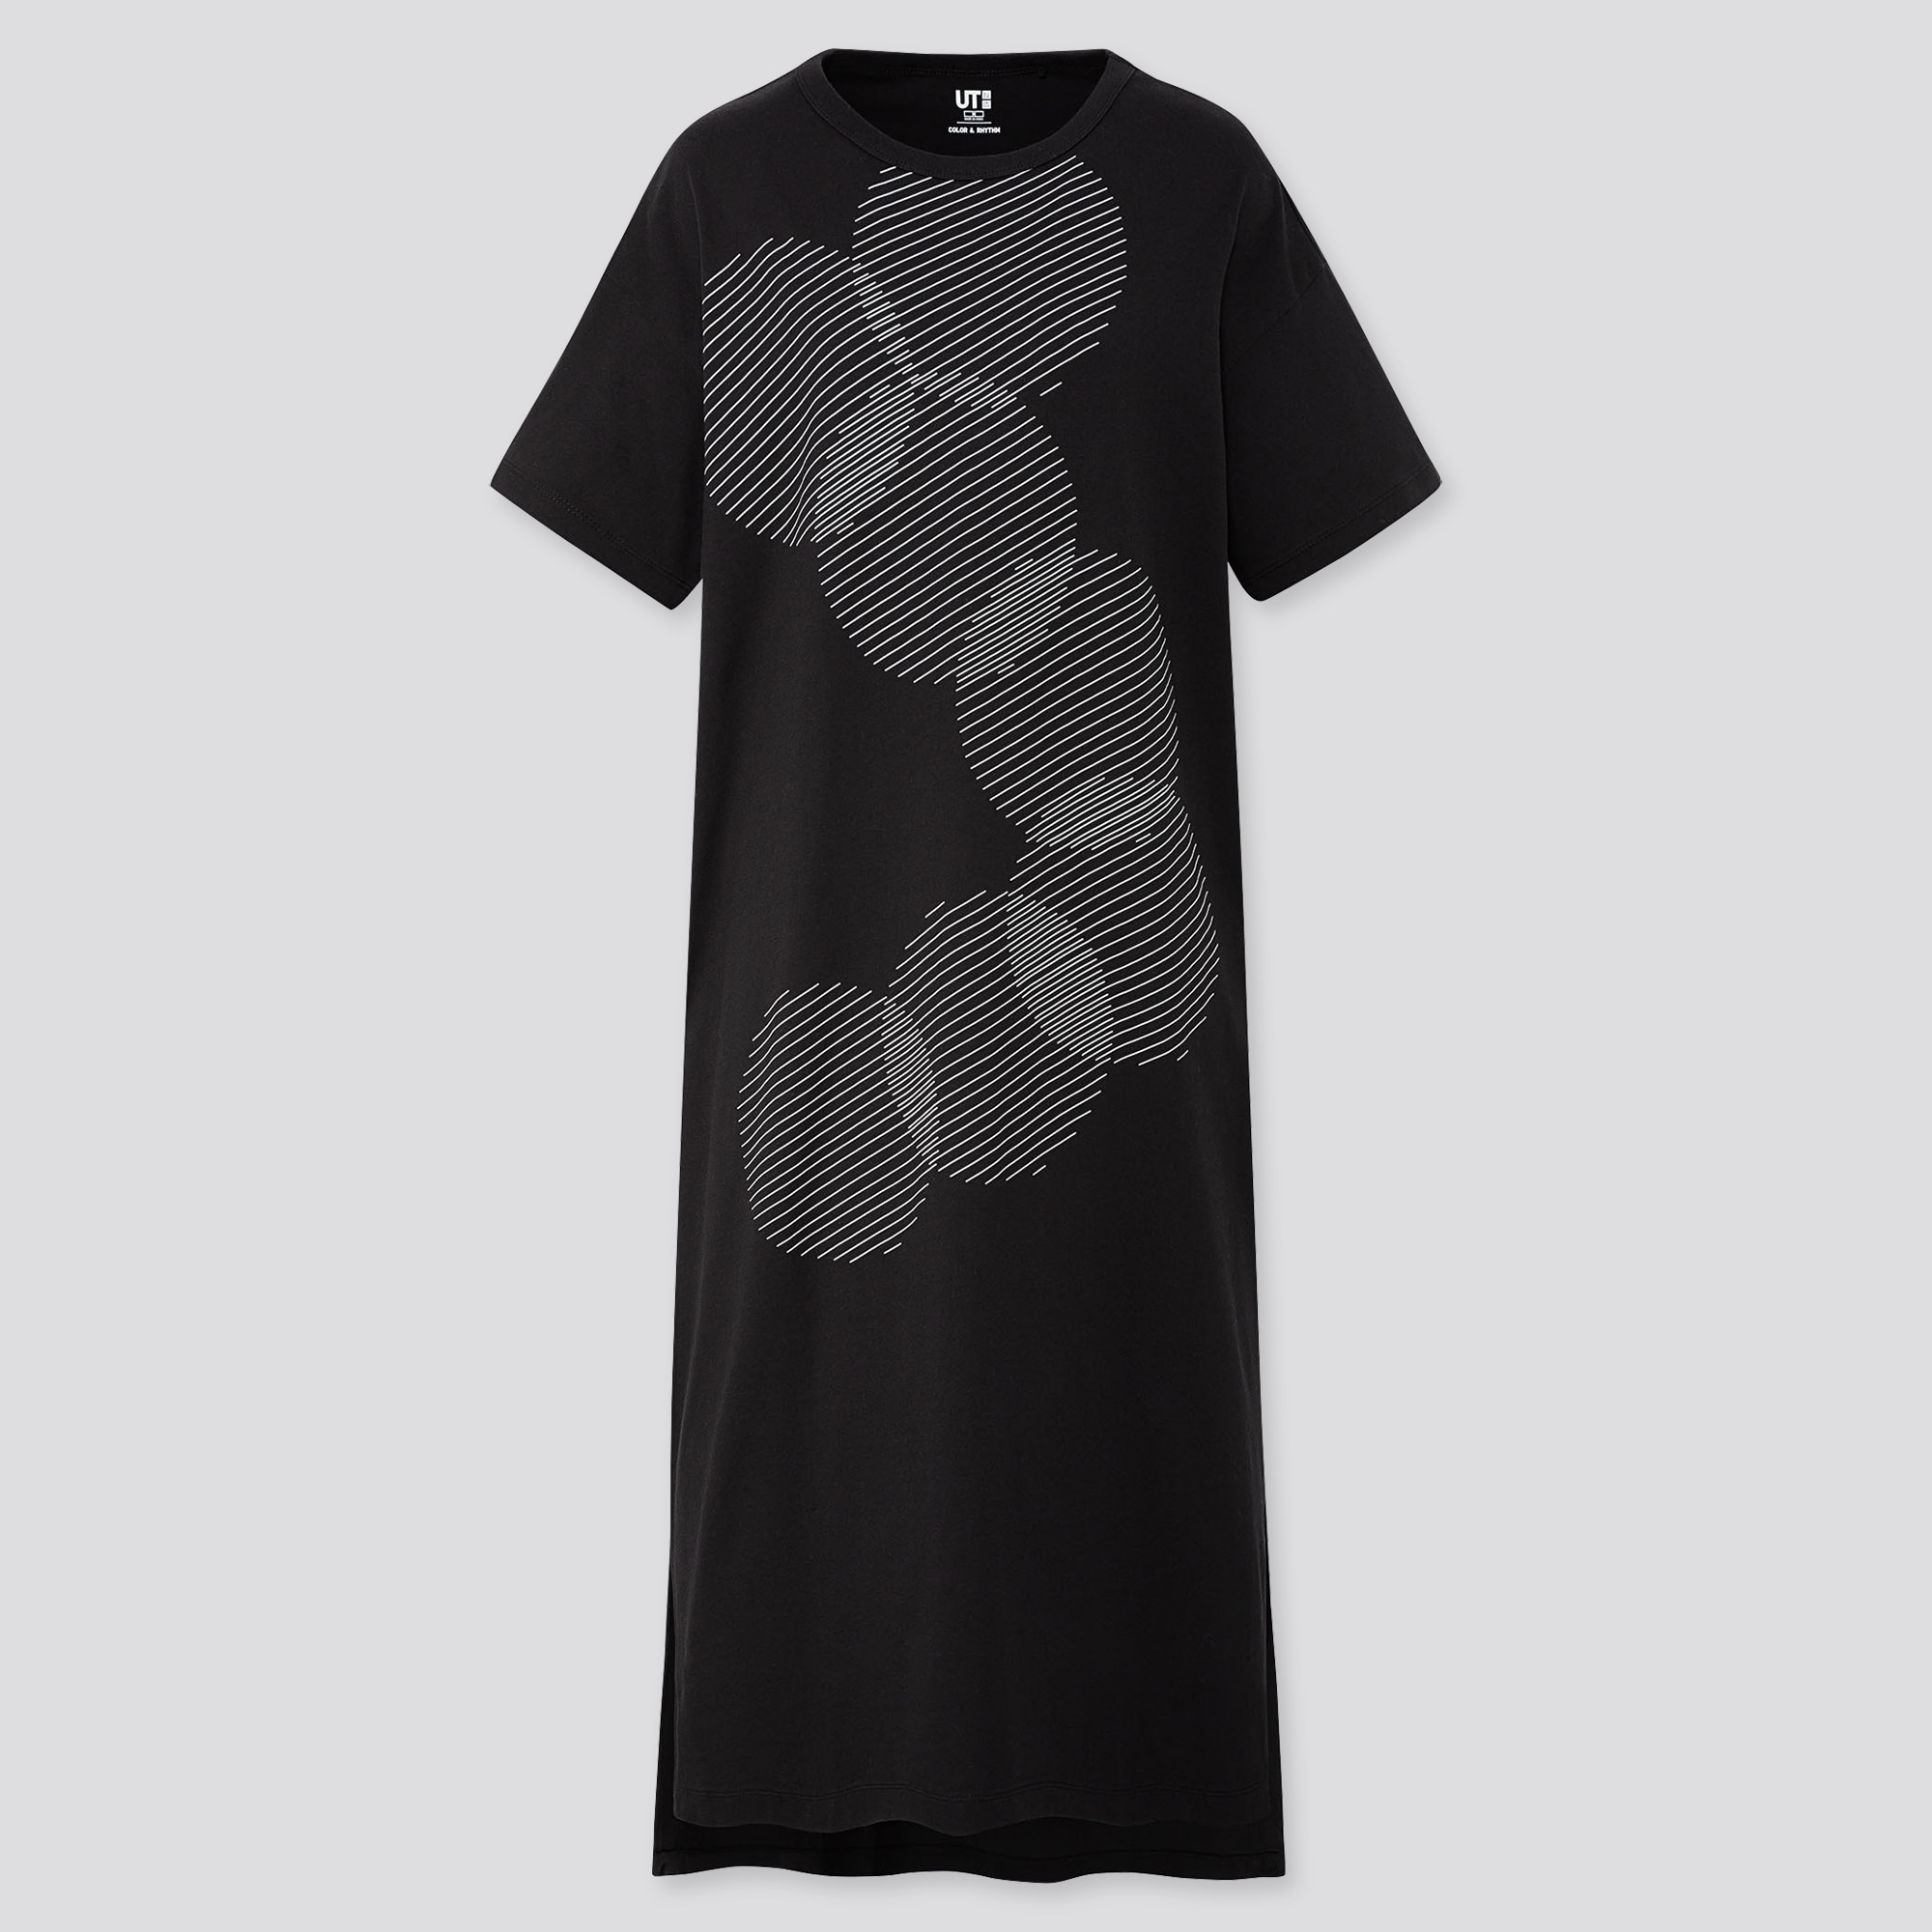 unique style new release available WOMEN COLOR AND RHYTHM LYGIA PAPE SHORT-SLEEVE T-SHIRT DRESS